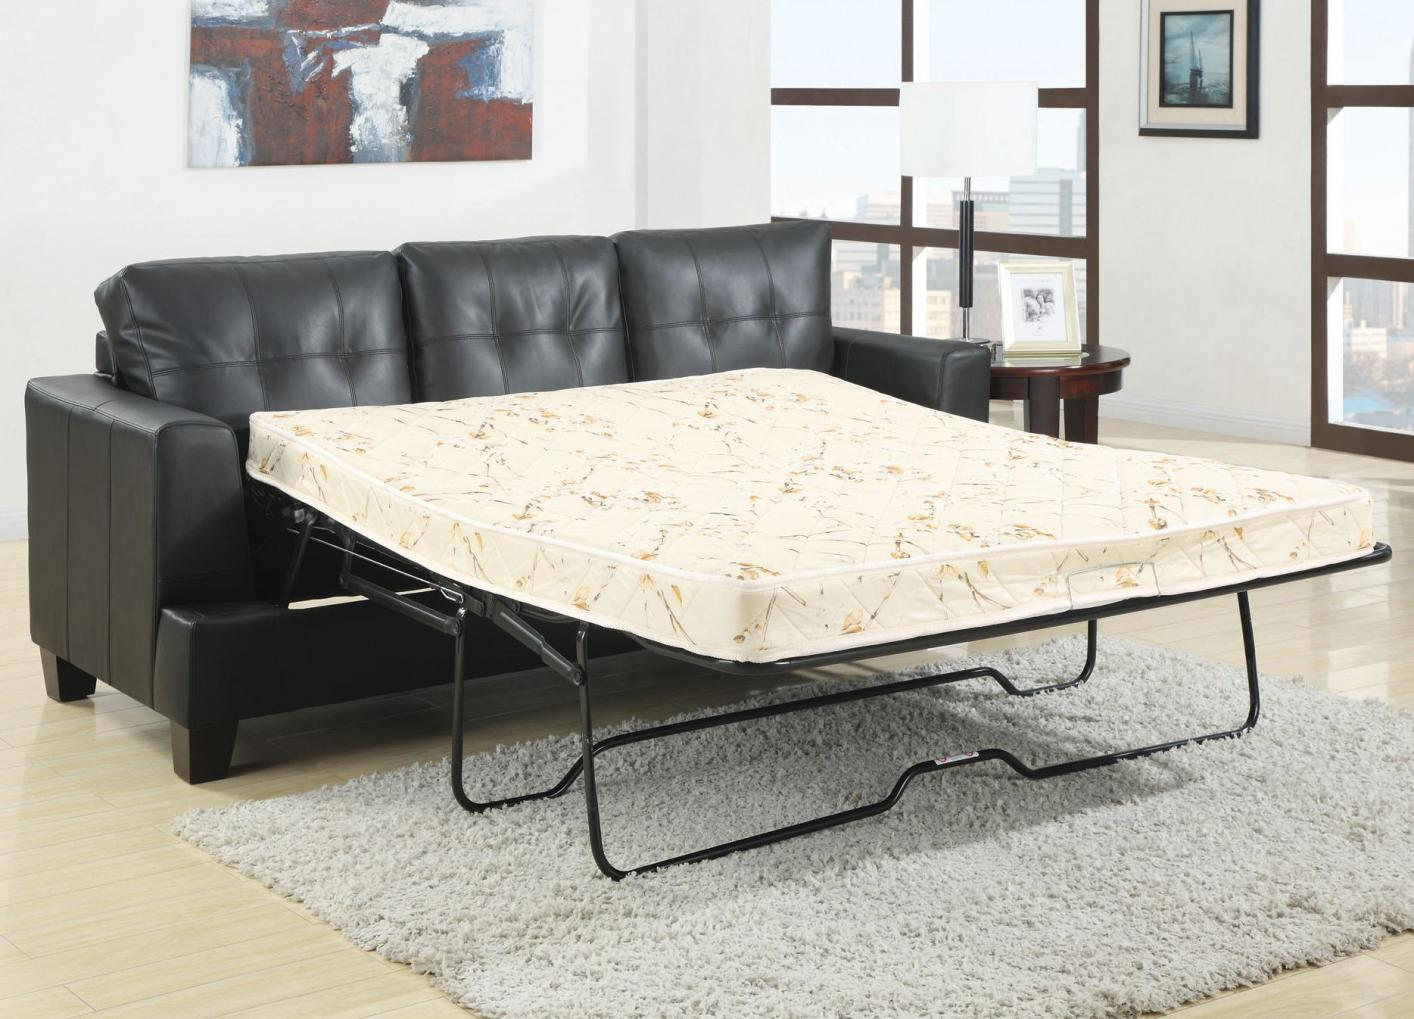 leather chair bed sleeper dining chairs upholstered black sofa steal a furniture outlet los angeles ca